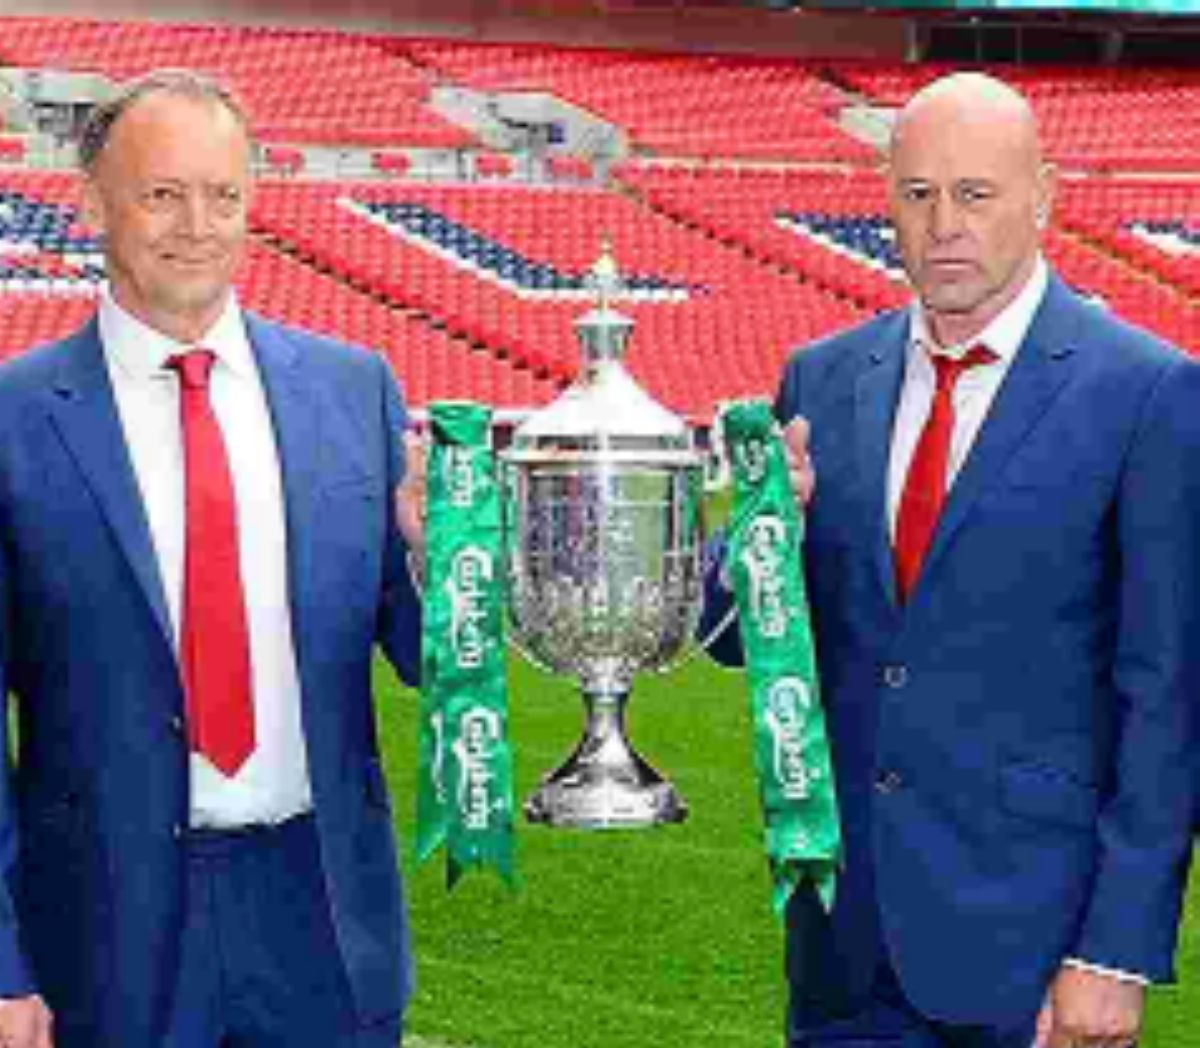 Dave Diaper, left, and Mick Brown get their hands on the FA Vase.